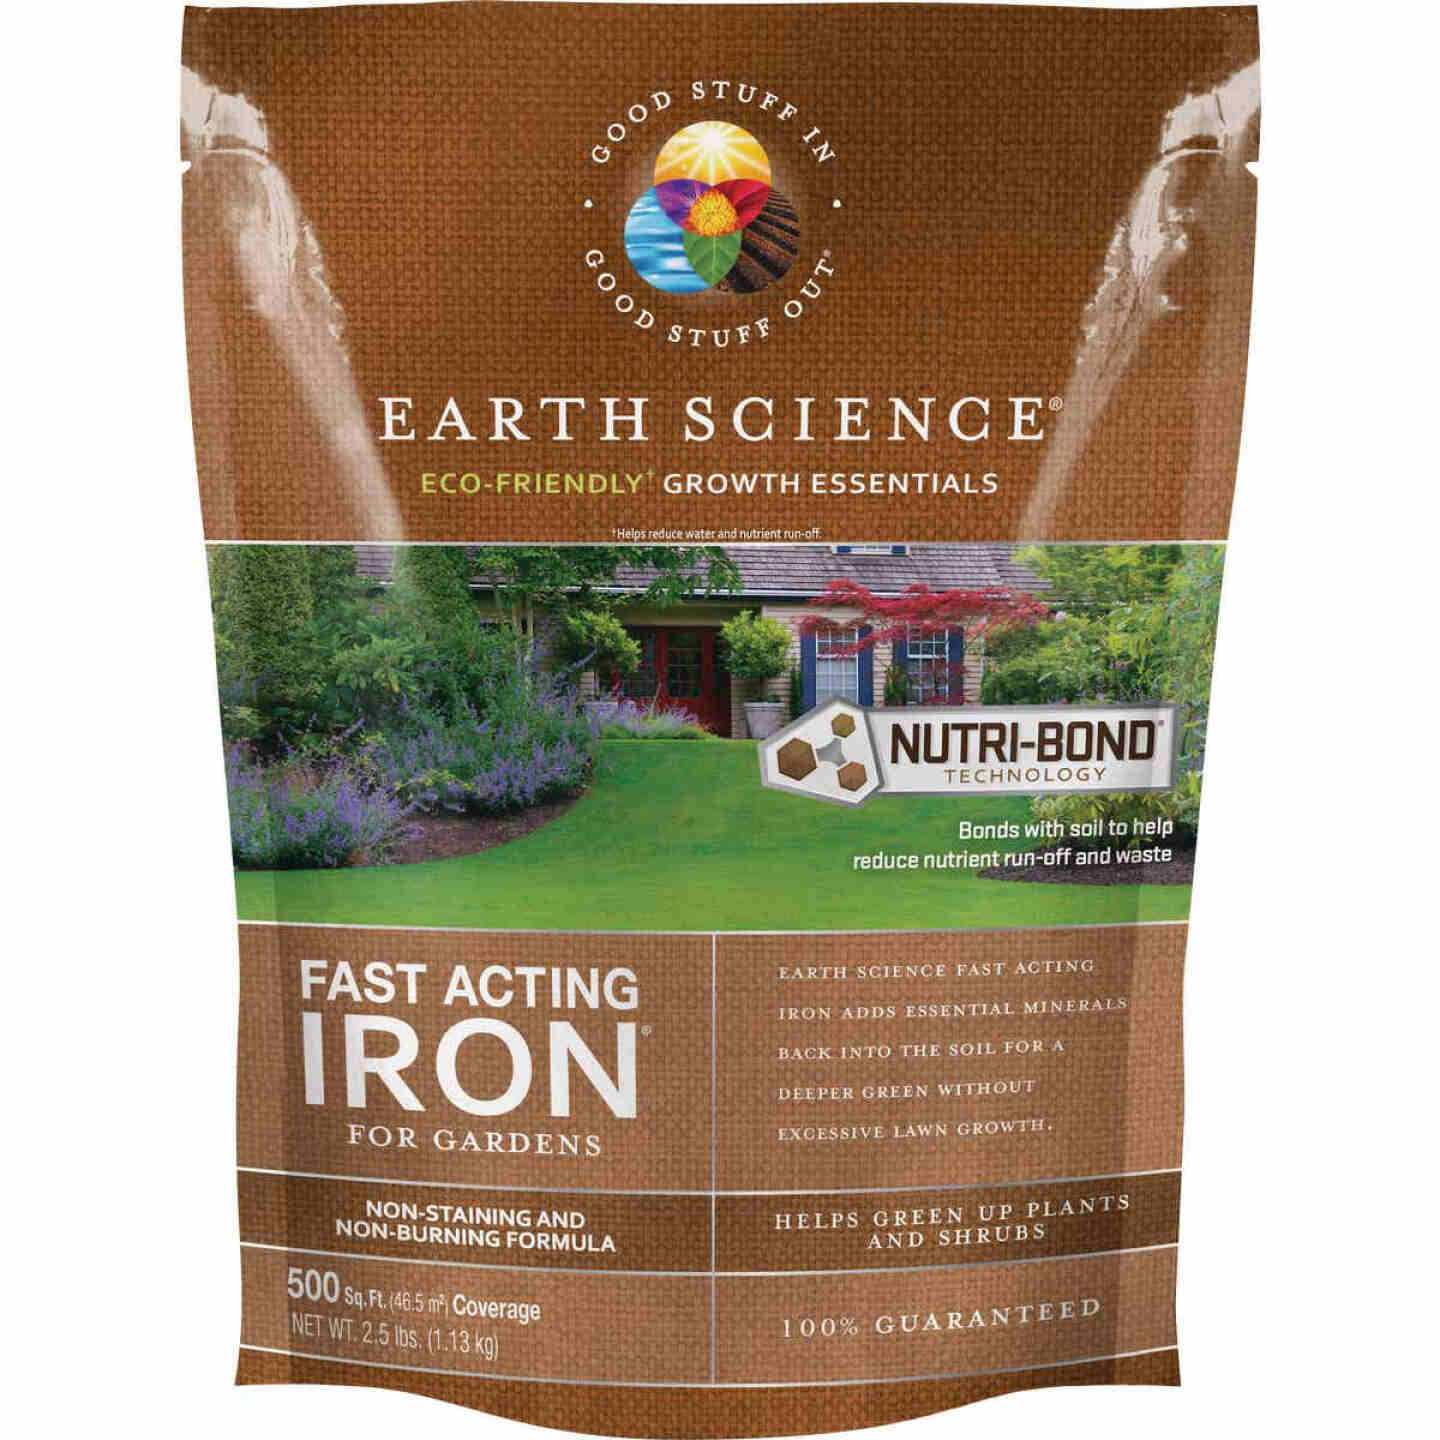 Earth Science Fast Acting 2.5 Lb. 1250 Sq. Ft. Coverage Iron & Soil Acidifier Image 1